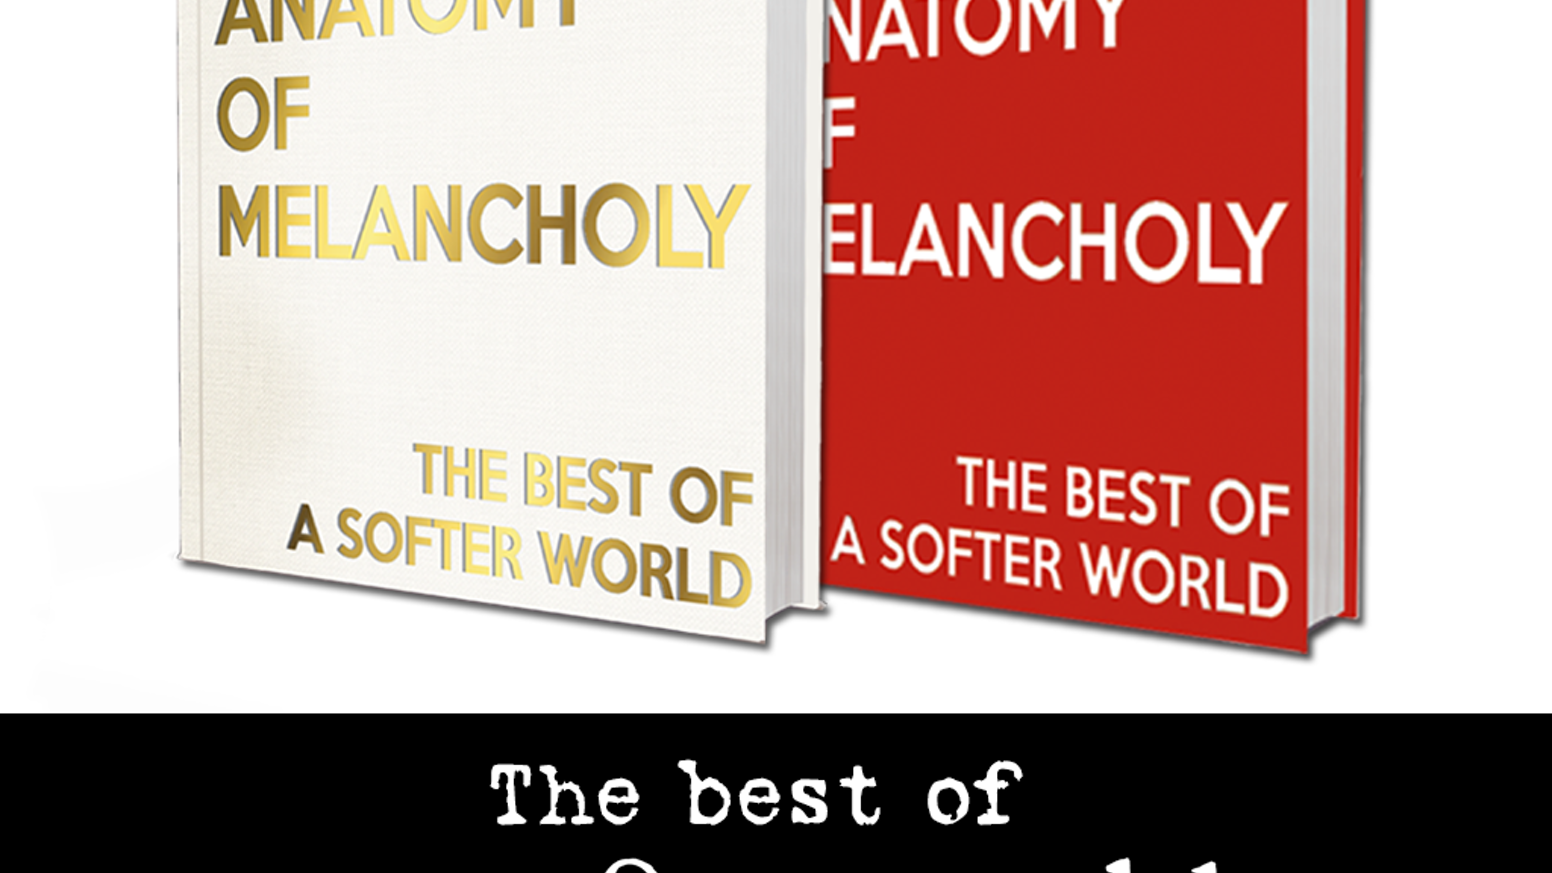 Anatomy Of Melancholy The Best Of A Softer World By Joey Comeau And